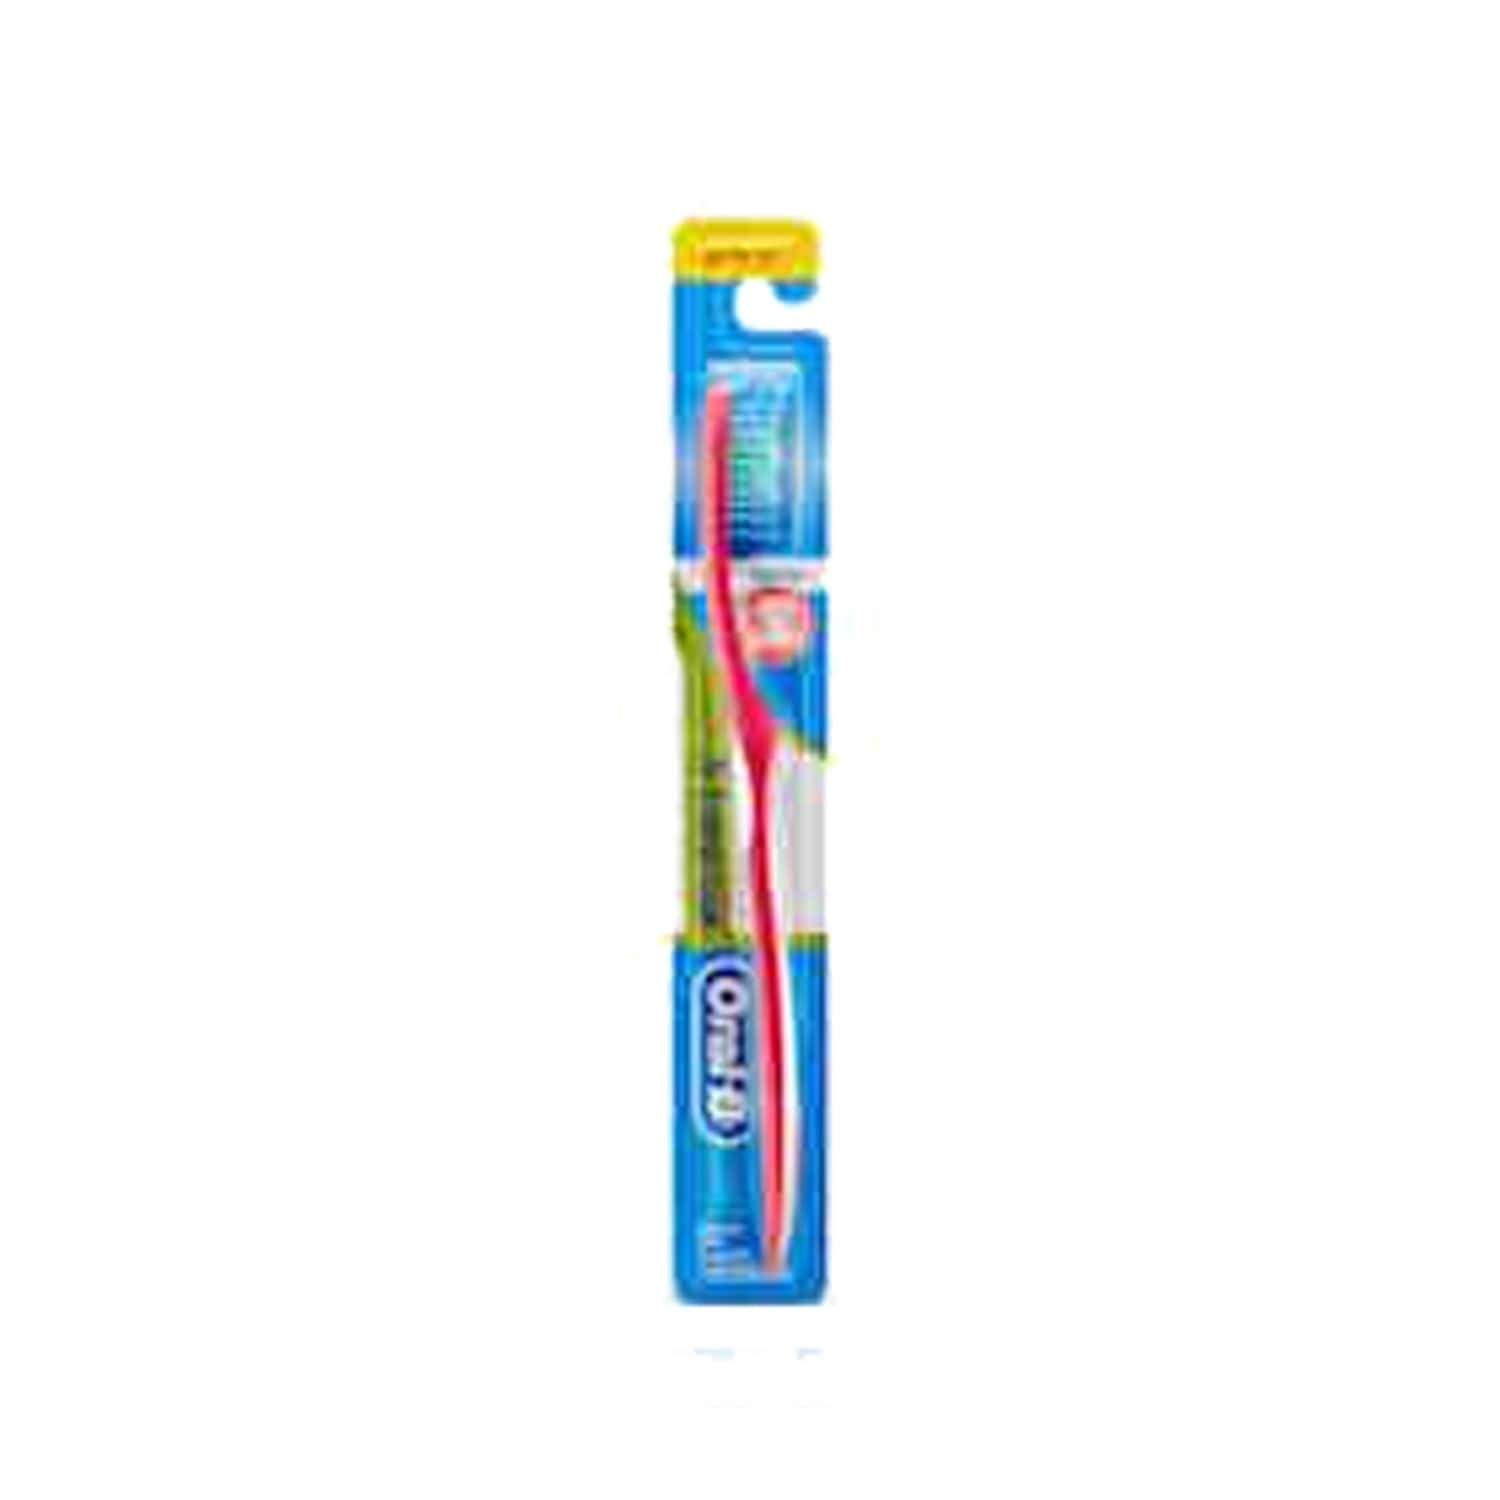 Oral-b Fresh Clean Toothbrush Medium 1 Piece